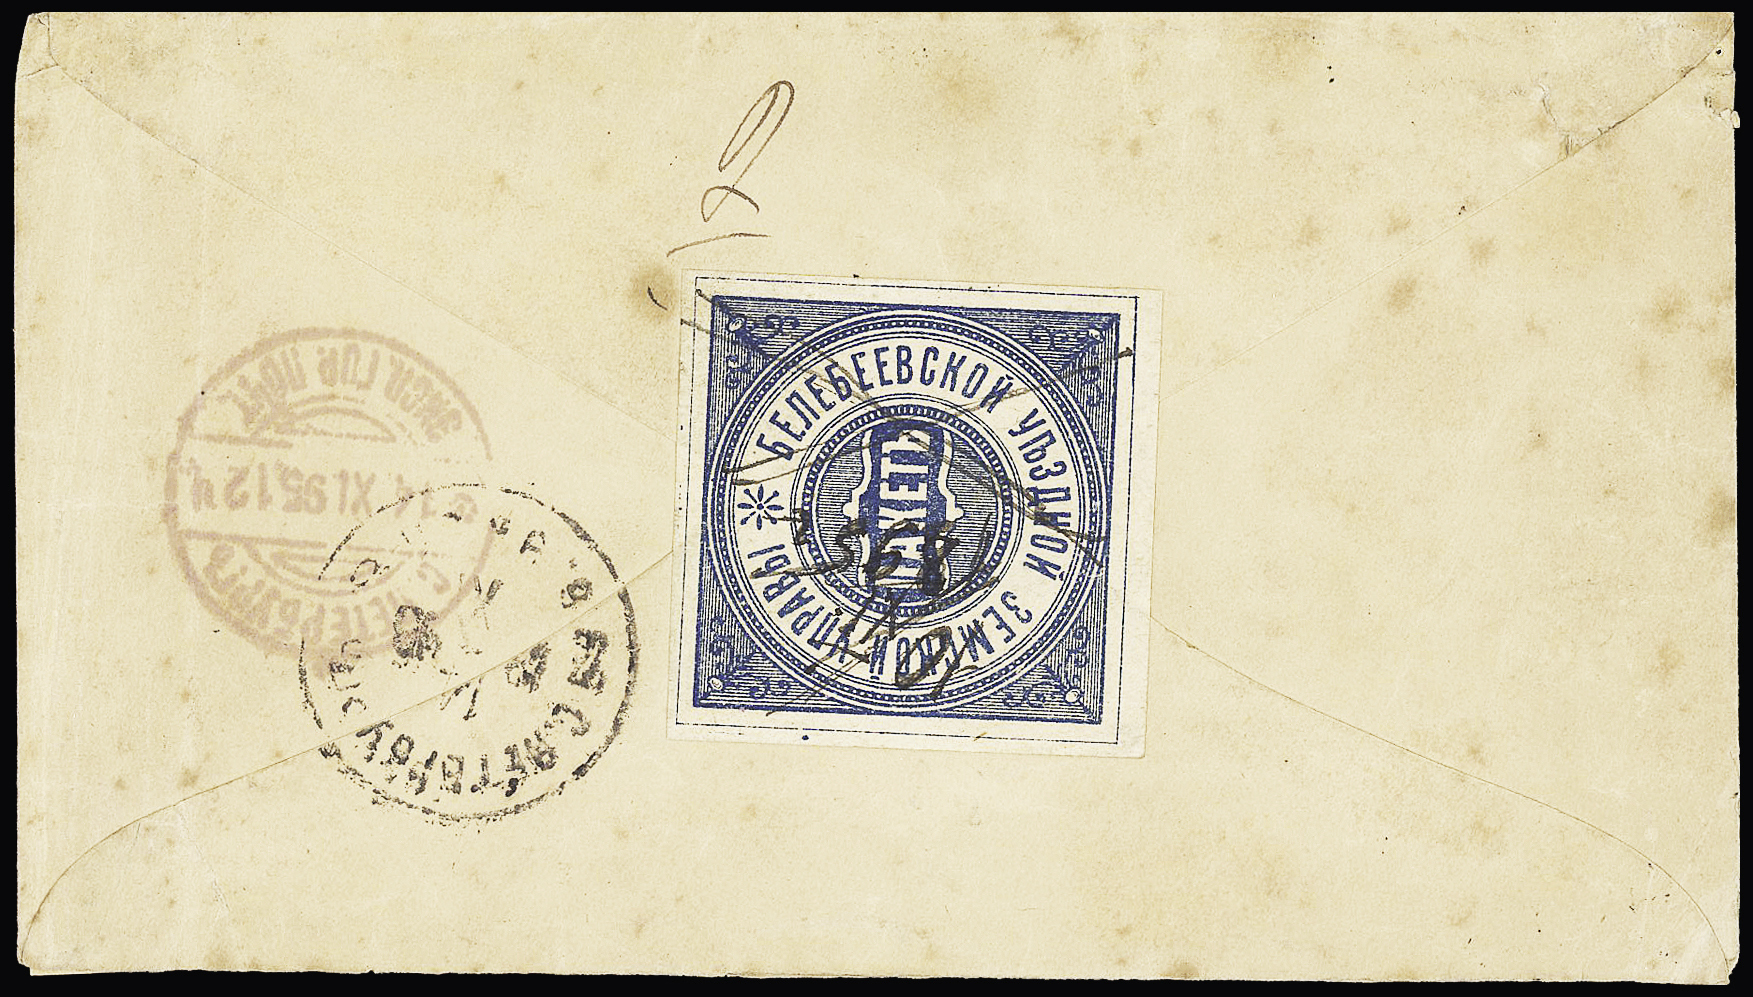 Lot 408 - Eastern Europe » RUSSIA - ZEMSTVOS » Belebey (Ufa Government)  -  Le Timbre Classique SA SALE ON OFFERS N ° 37 PARIS